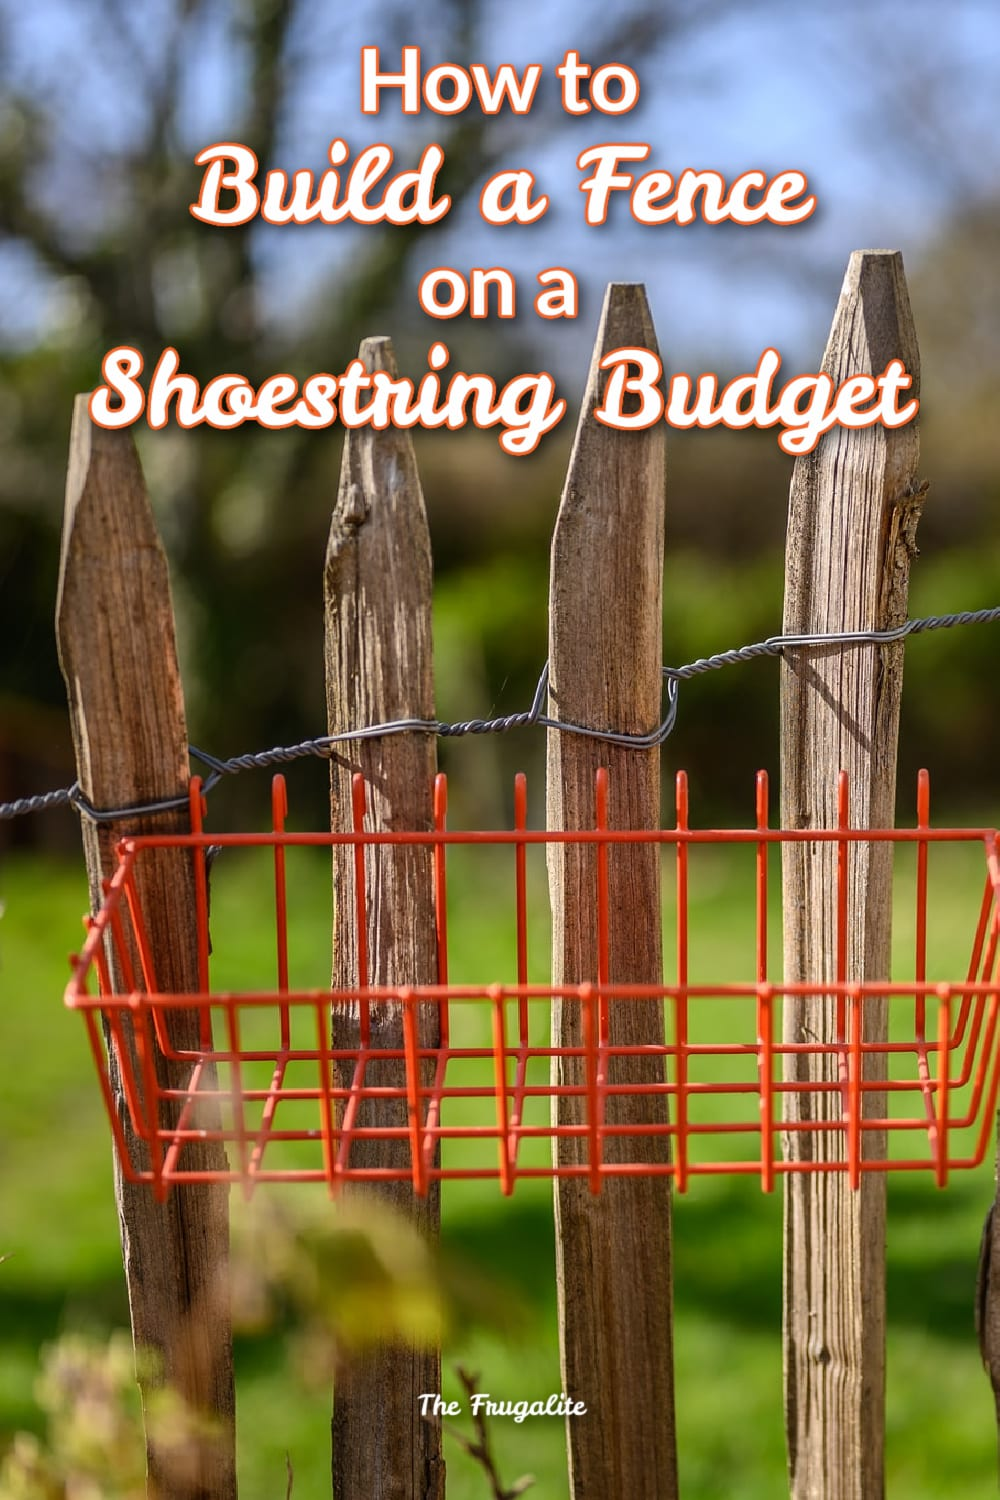 How to Build a Fence on a Shoestring Budget